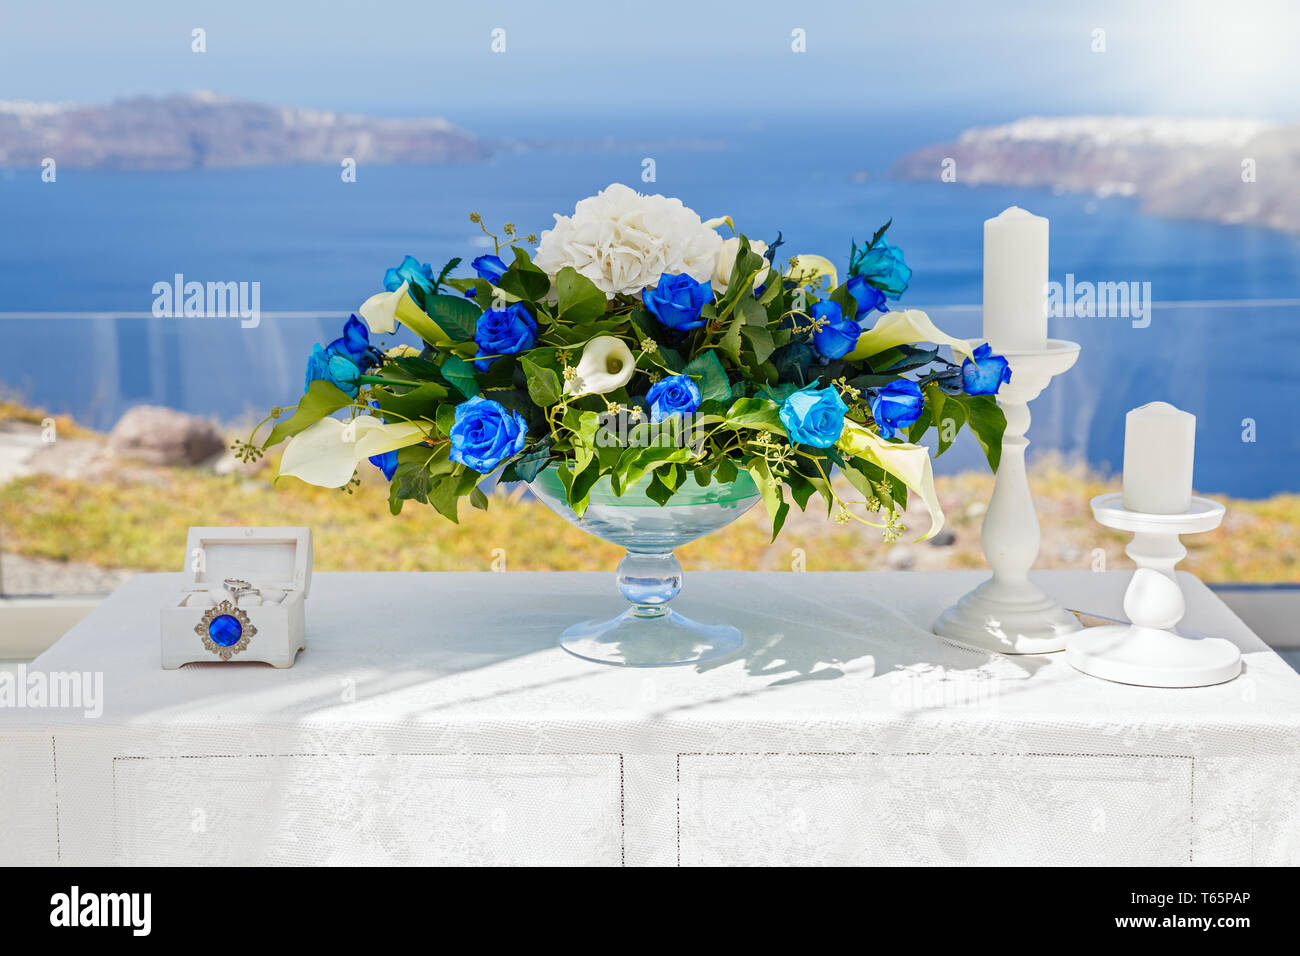 Wedding Decorations And Bouquet With Blue Flowers On The